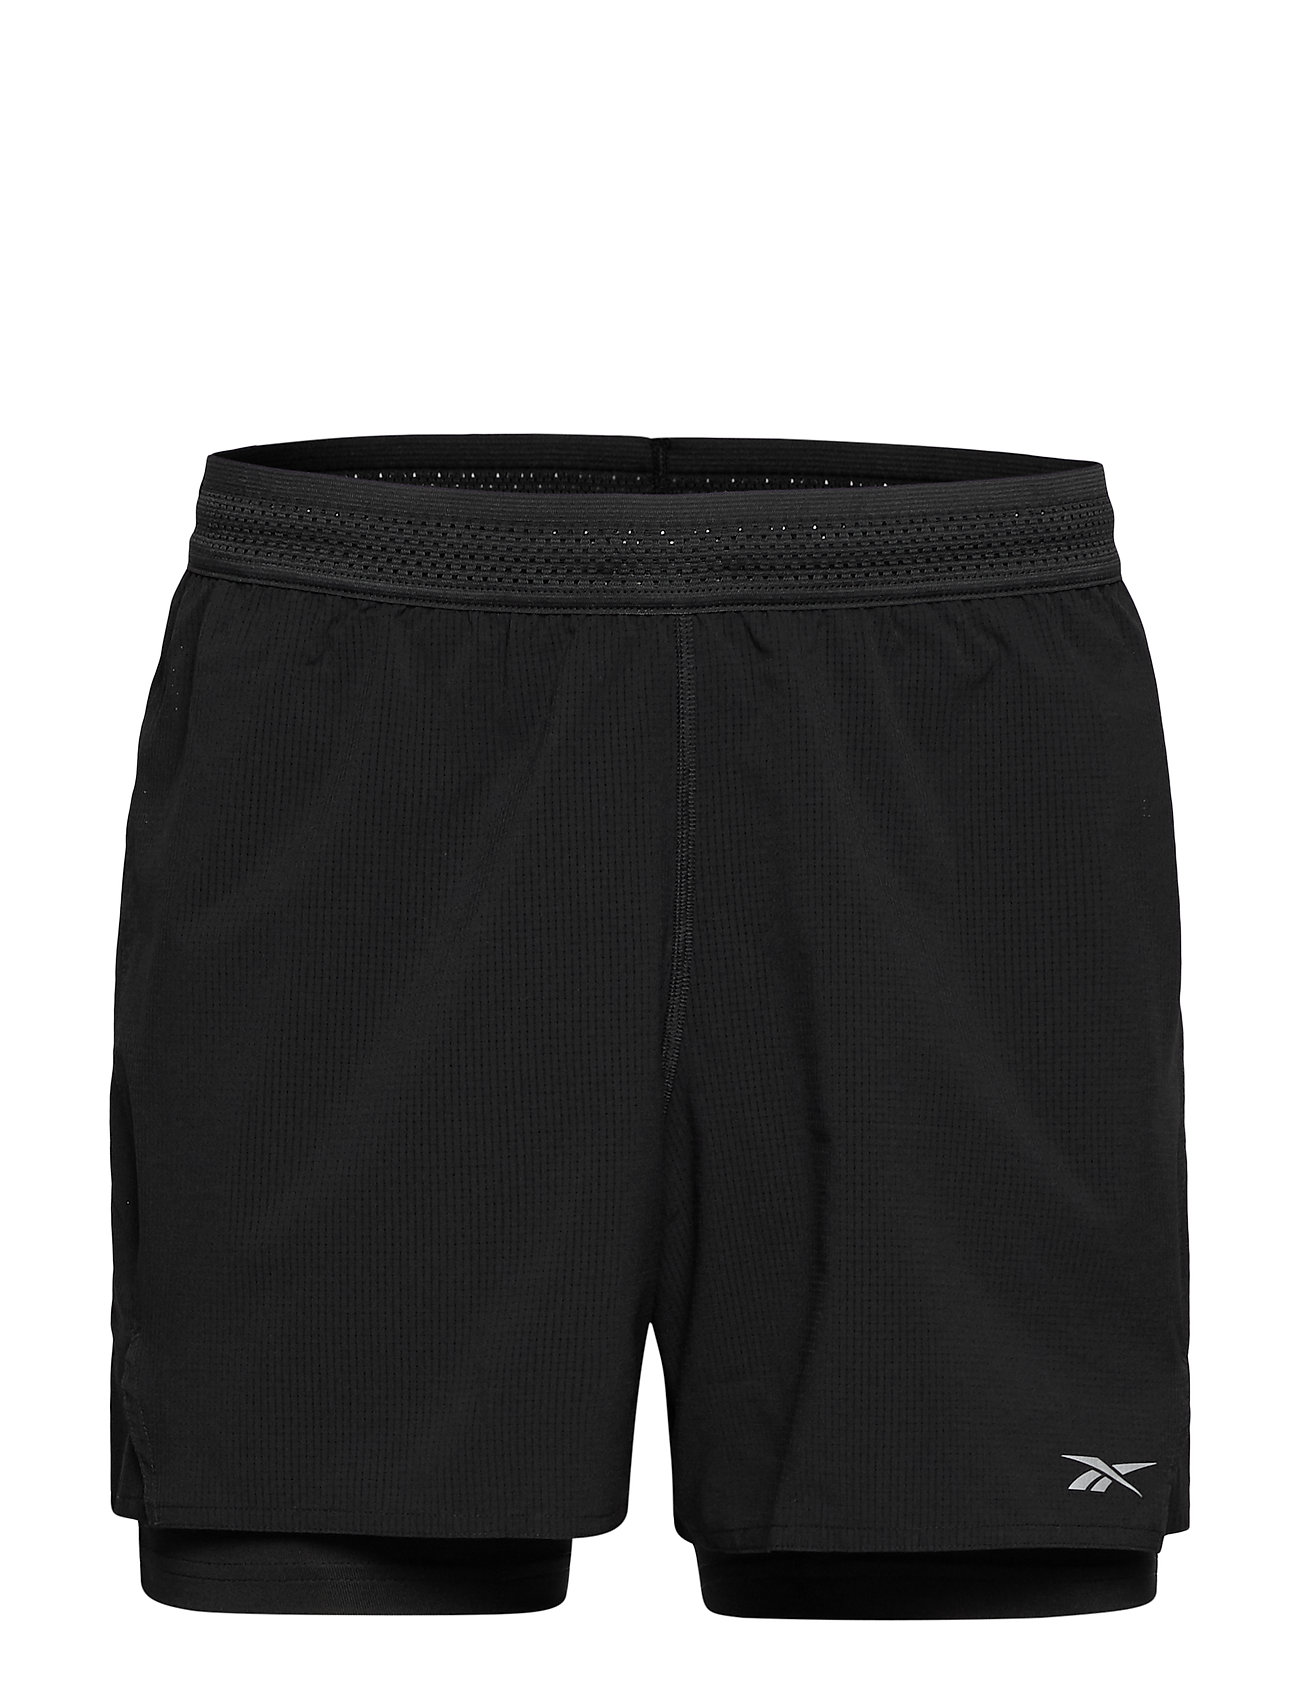 Reebok Performance OSR EPIC 2-1 RUN SHORT - BLACK